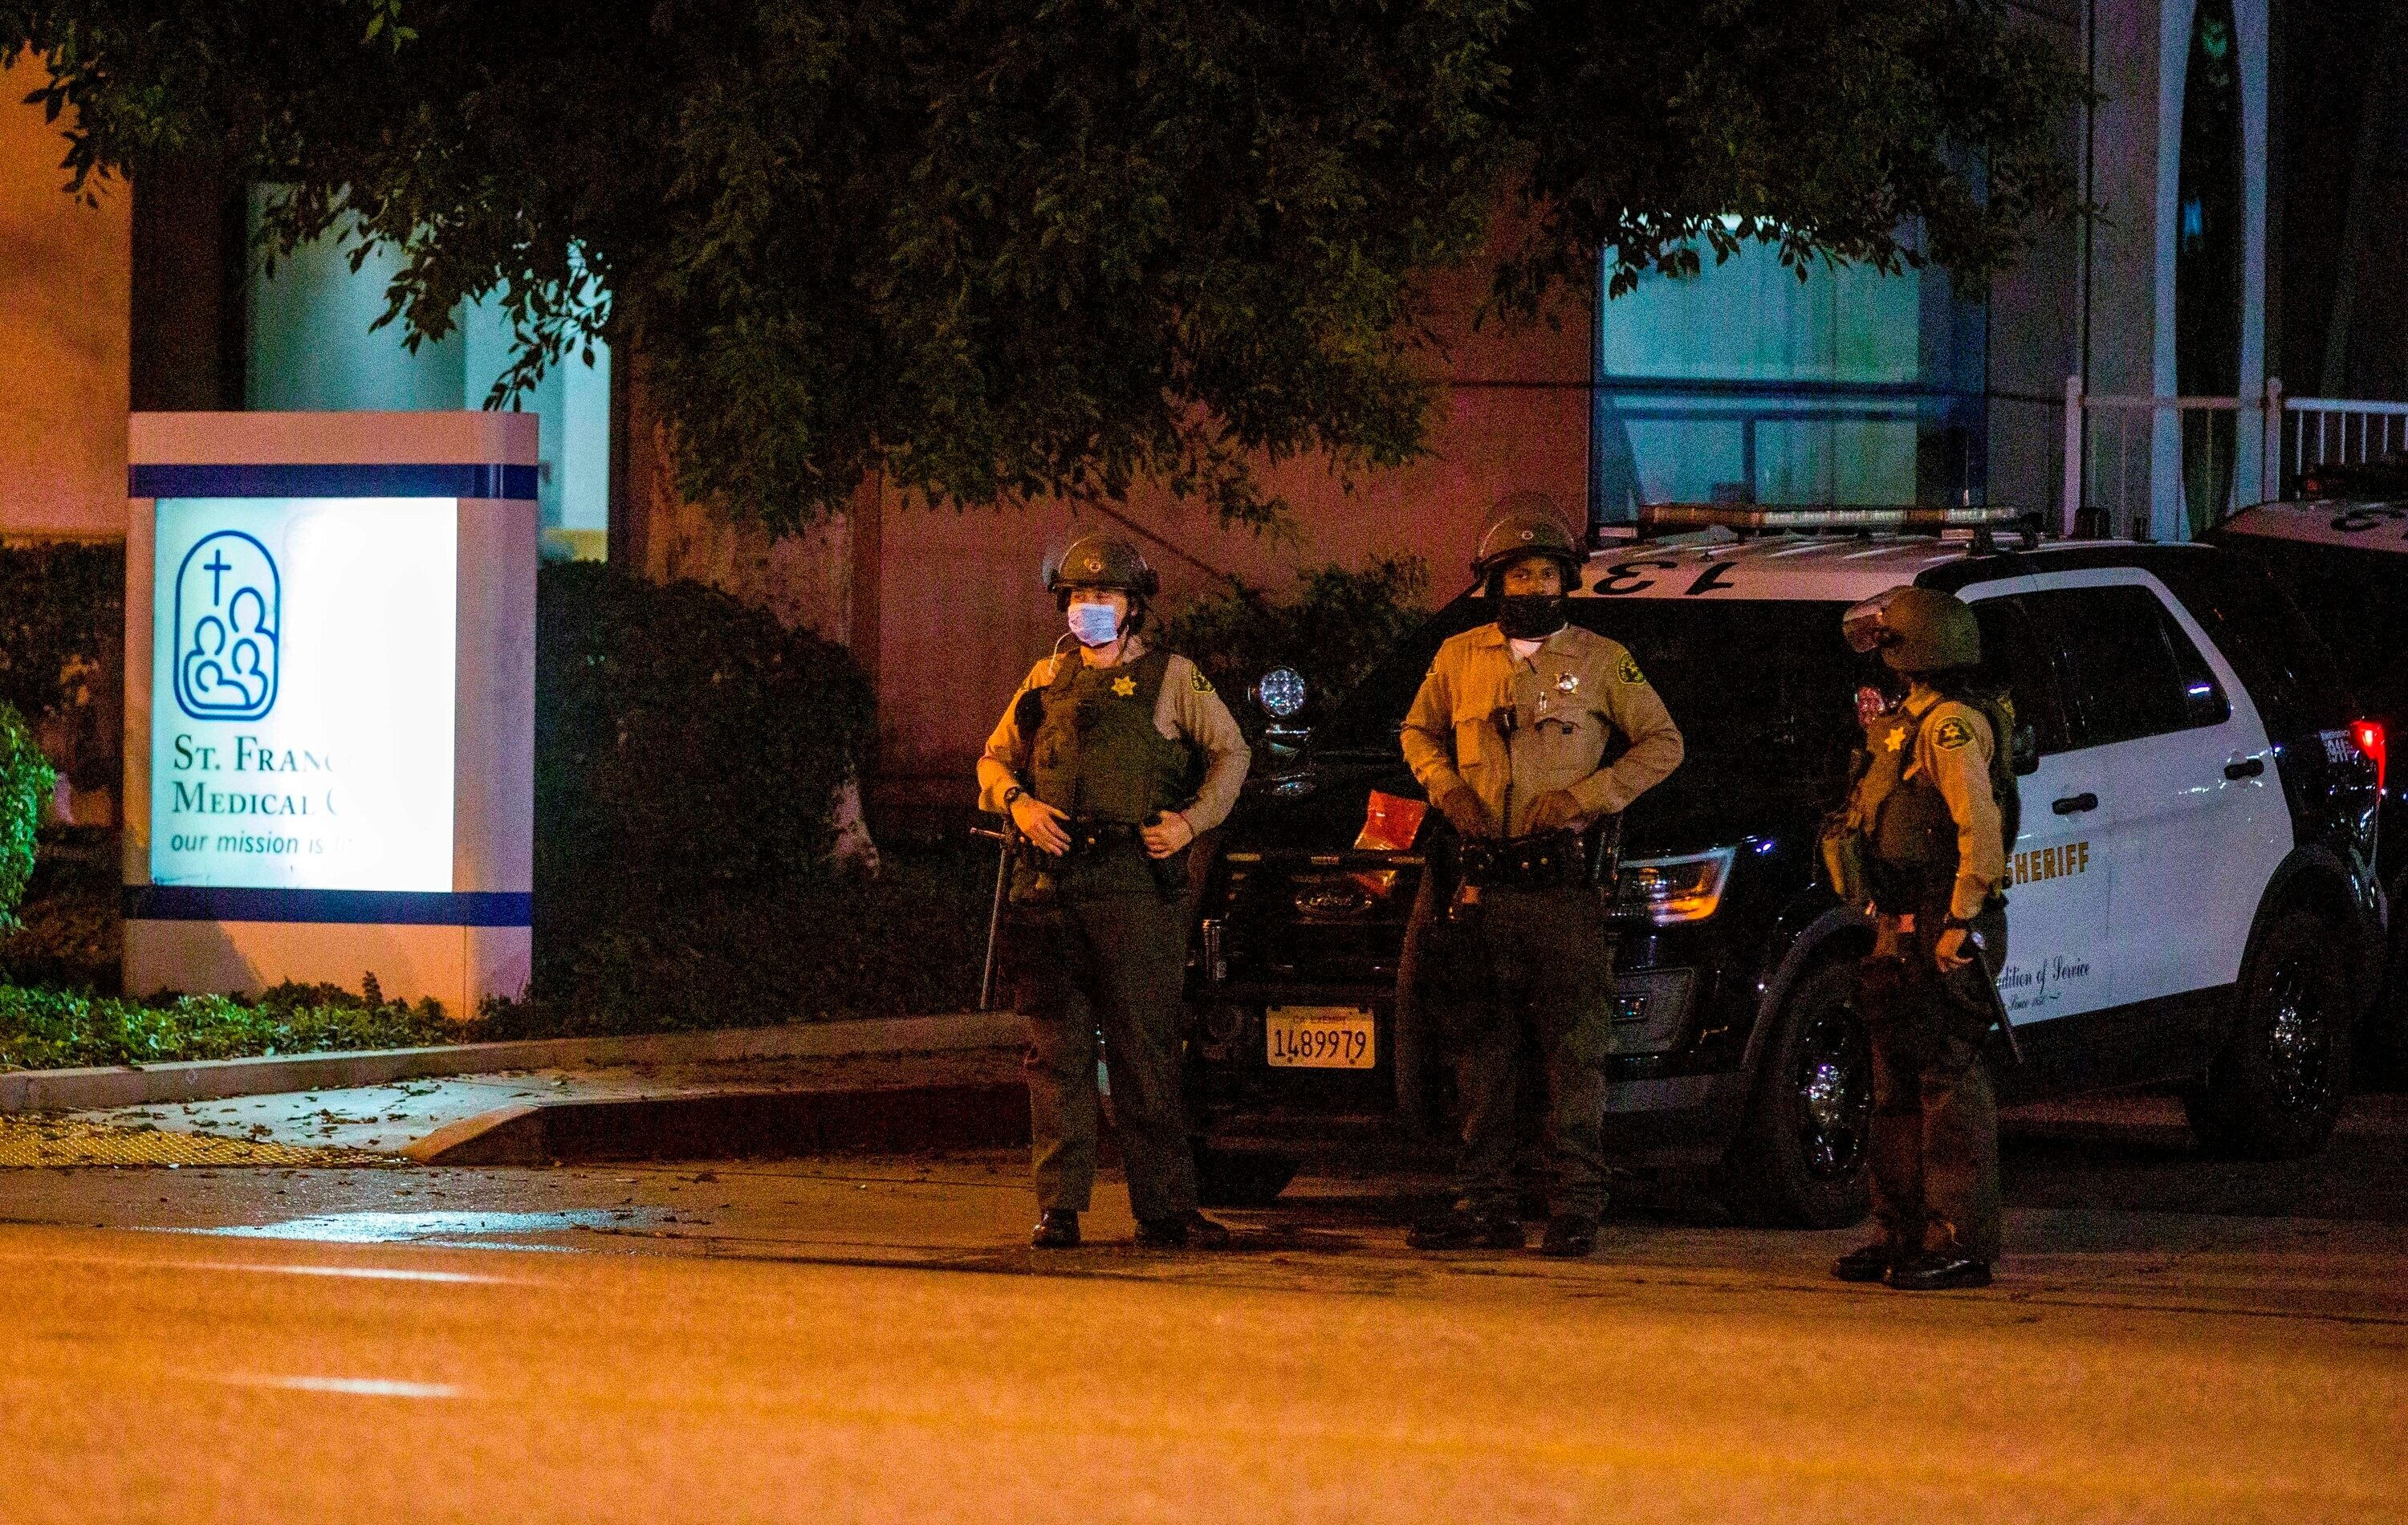 Los Angeles County Sheriff's deputies guard the entrance to St. Francis Medical Center early Monday, Sept. 13, 2020, after tw